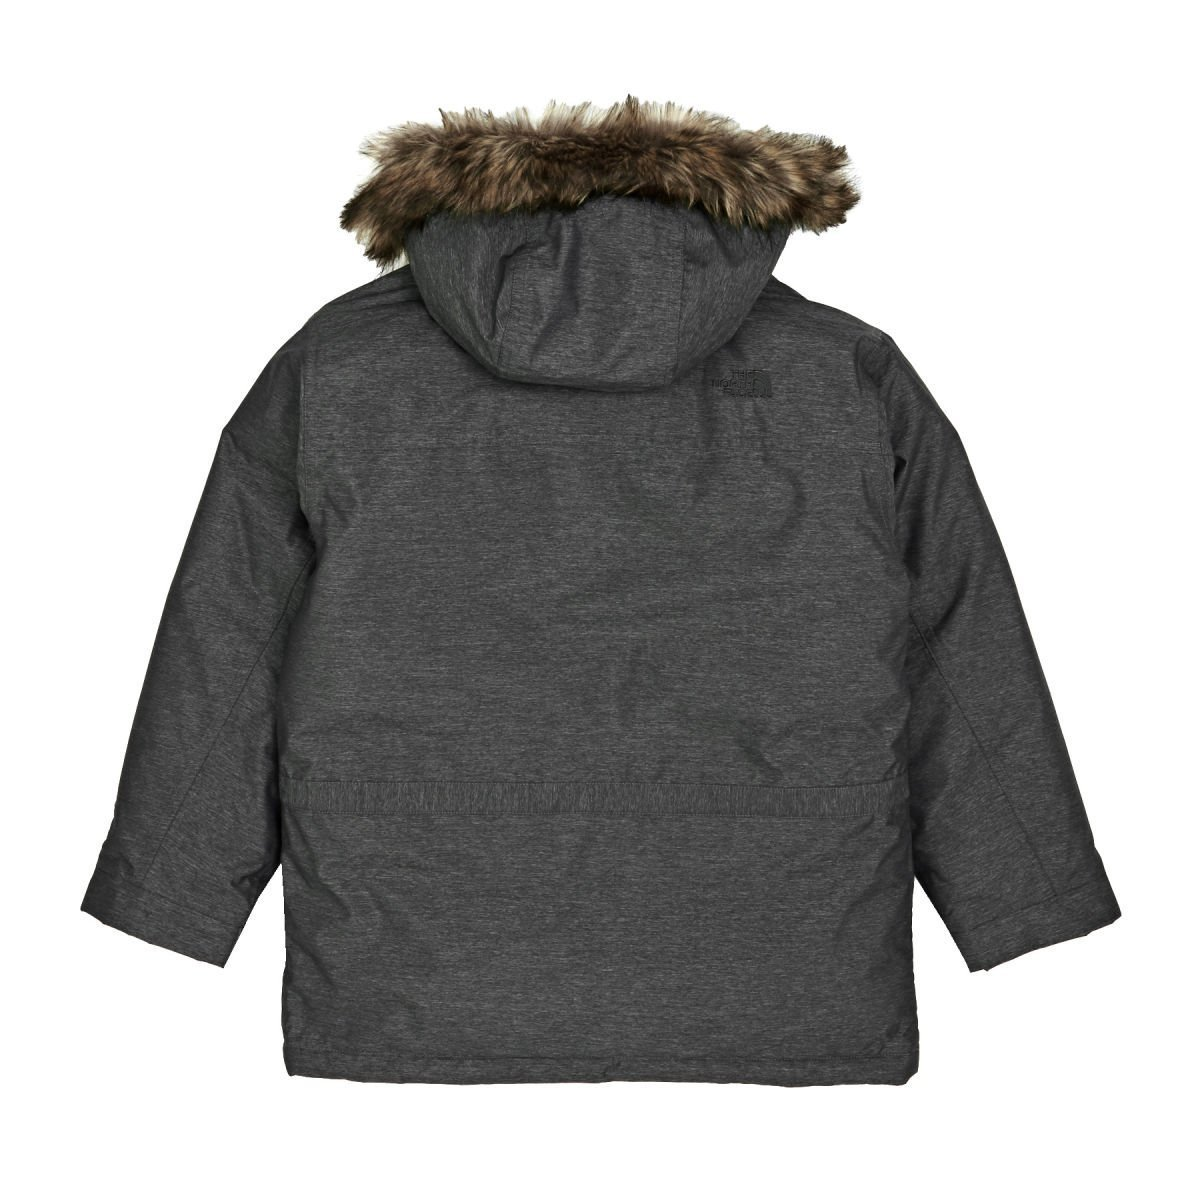 The North Face BOYS MCMURDO DOWN PARKA color: TNF MEDIUM GREY HEATHER size: LG (14-16 Big Kids) by The North Face (Image #2)